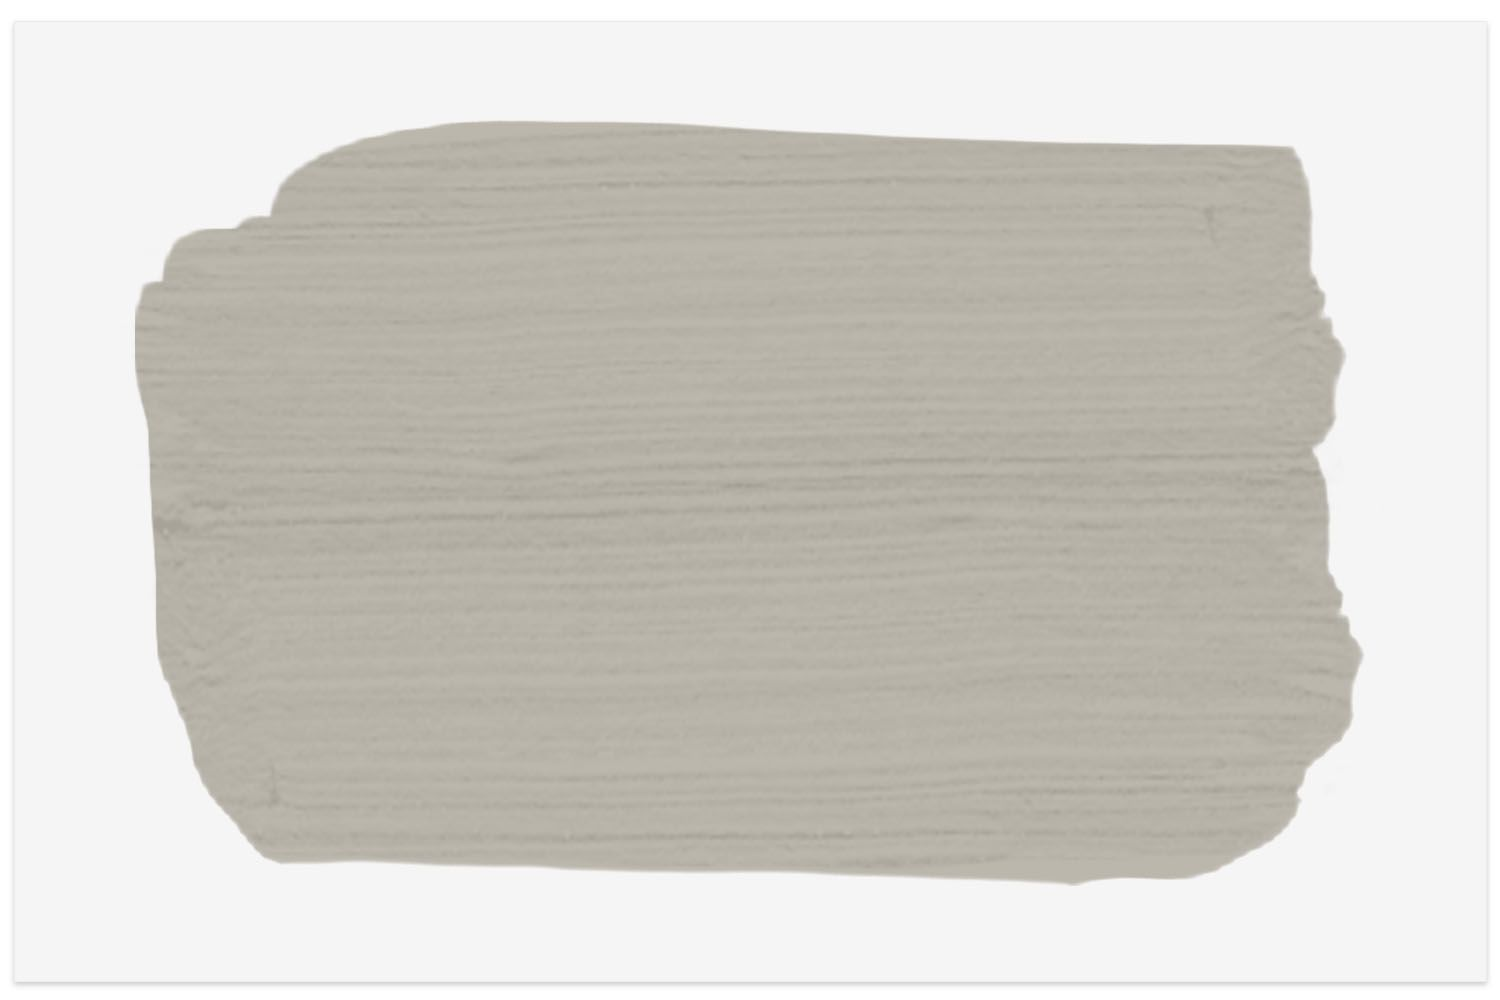 Sherwin-Williams Mindful Gray paint swatch